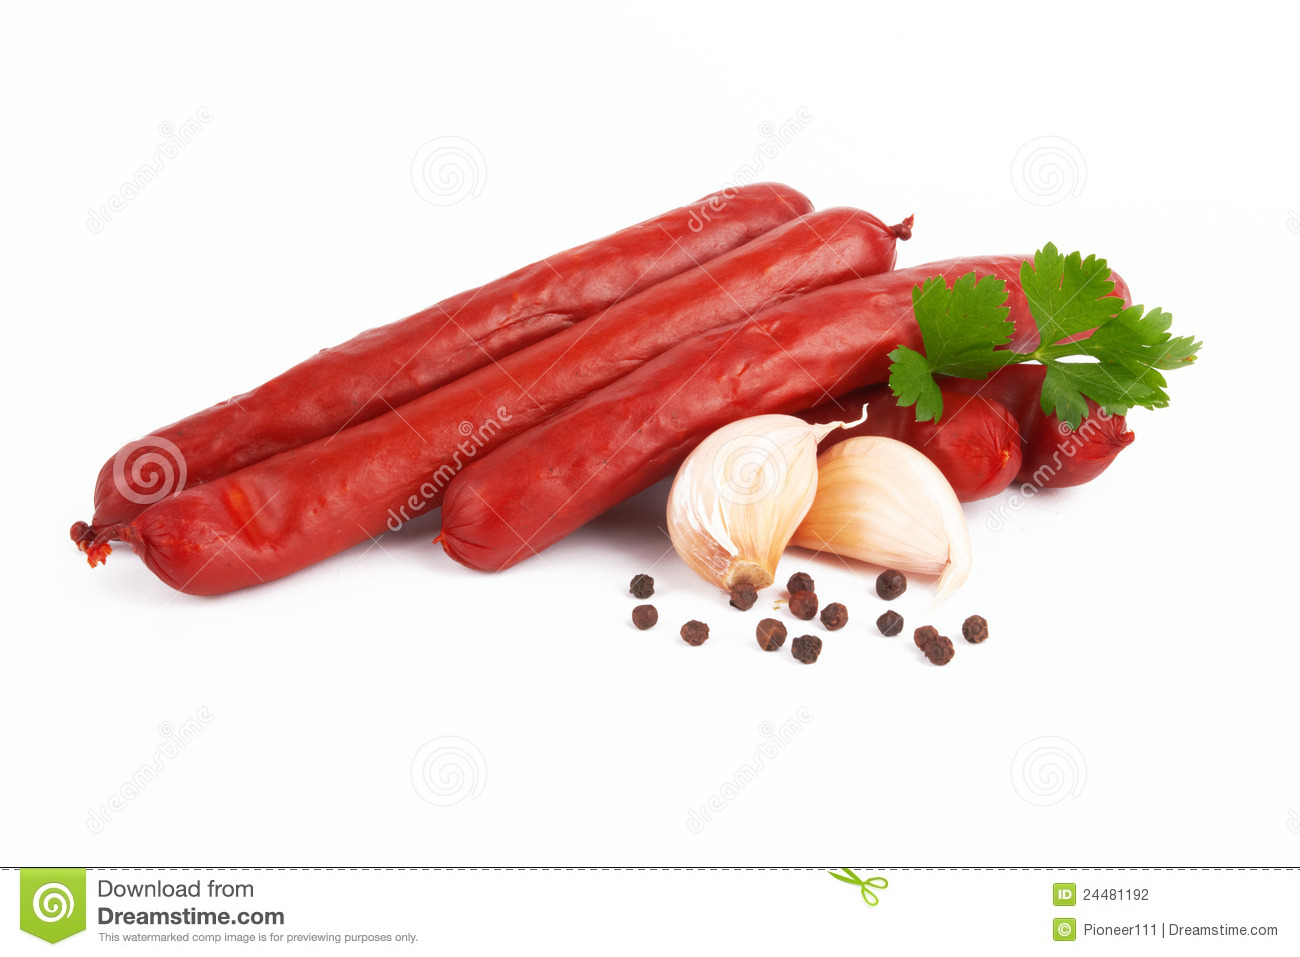 sausage business plan Essay starting a business plan starting a new business is an exciting venture and has its unique mix of challenges and rewards many are set-up for failure if no clear goals or measures are established and adhered.